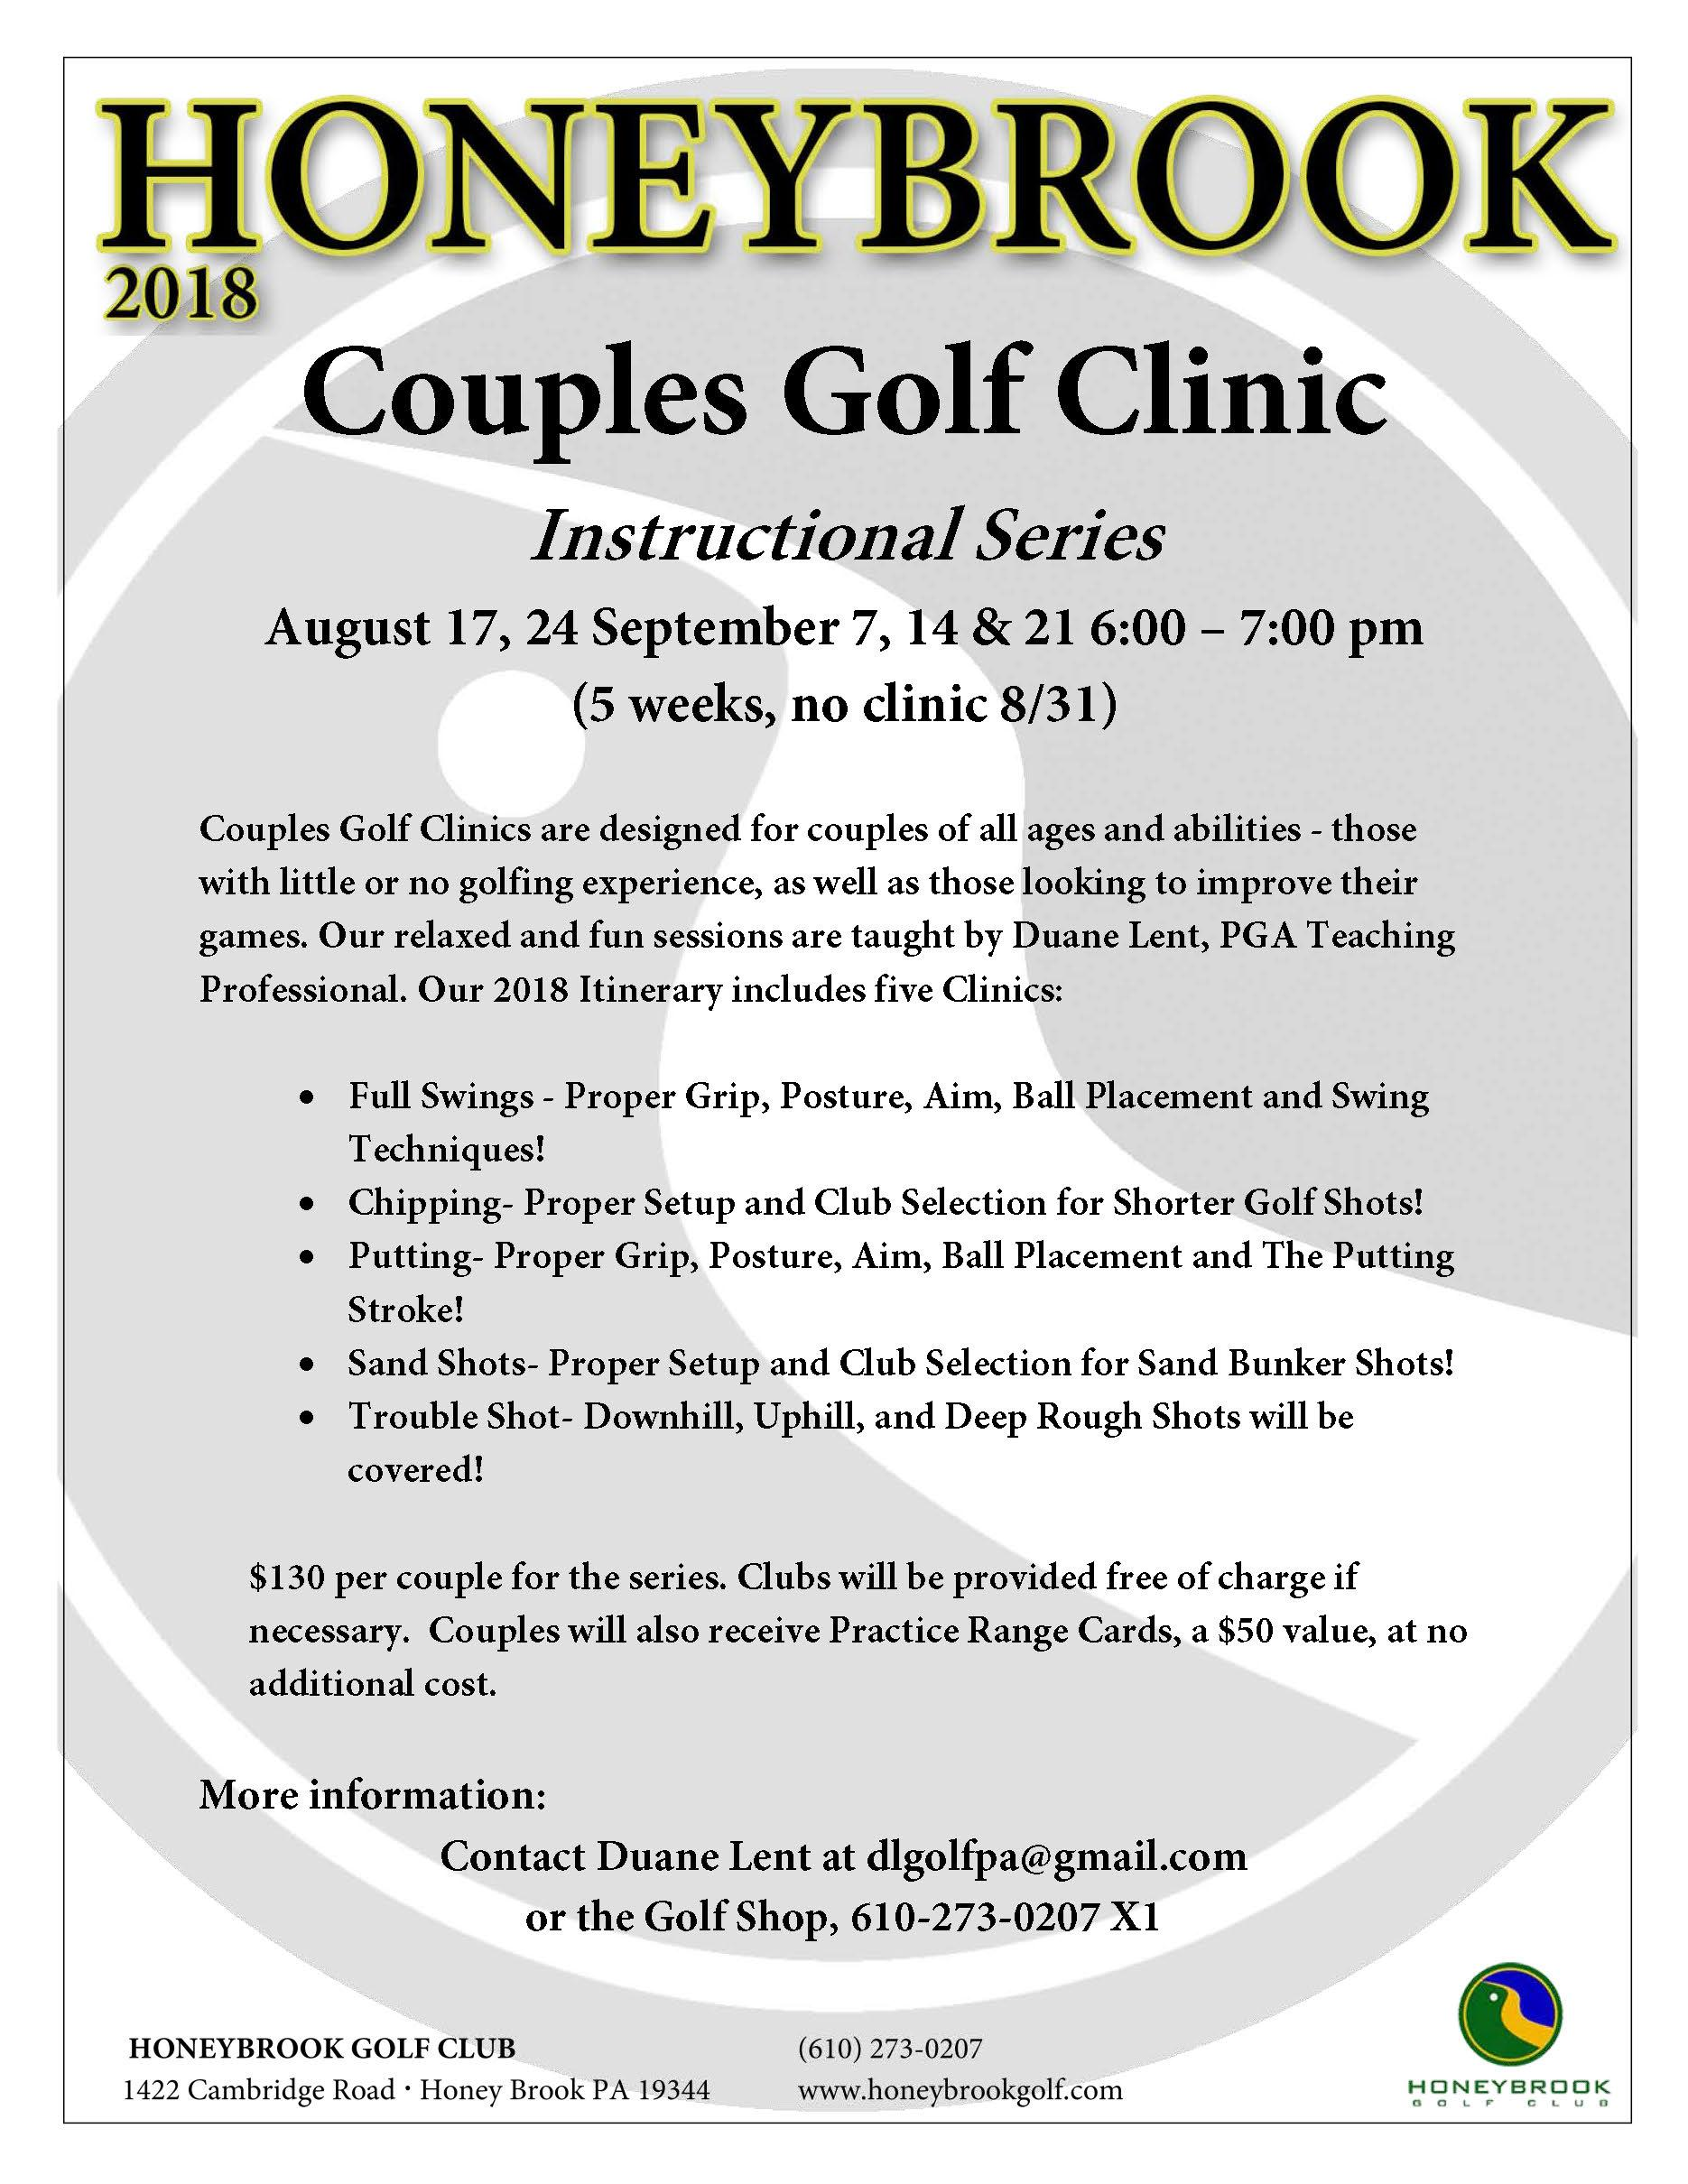 2018 Couples Golf Clinic Page 1